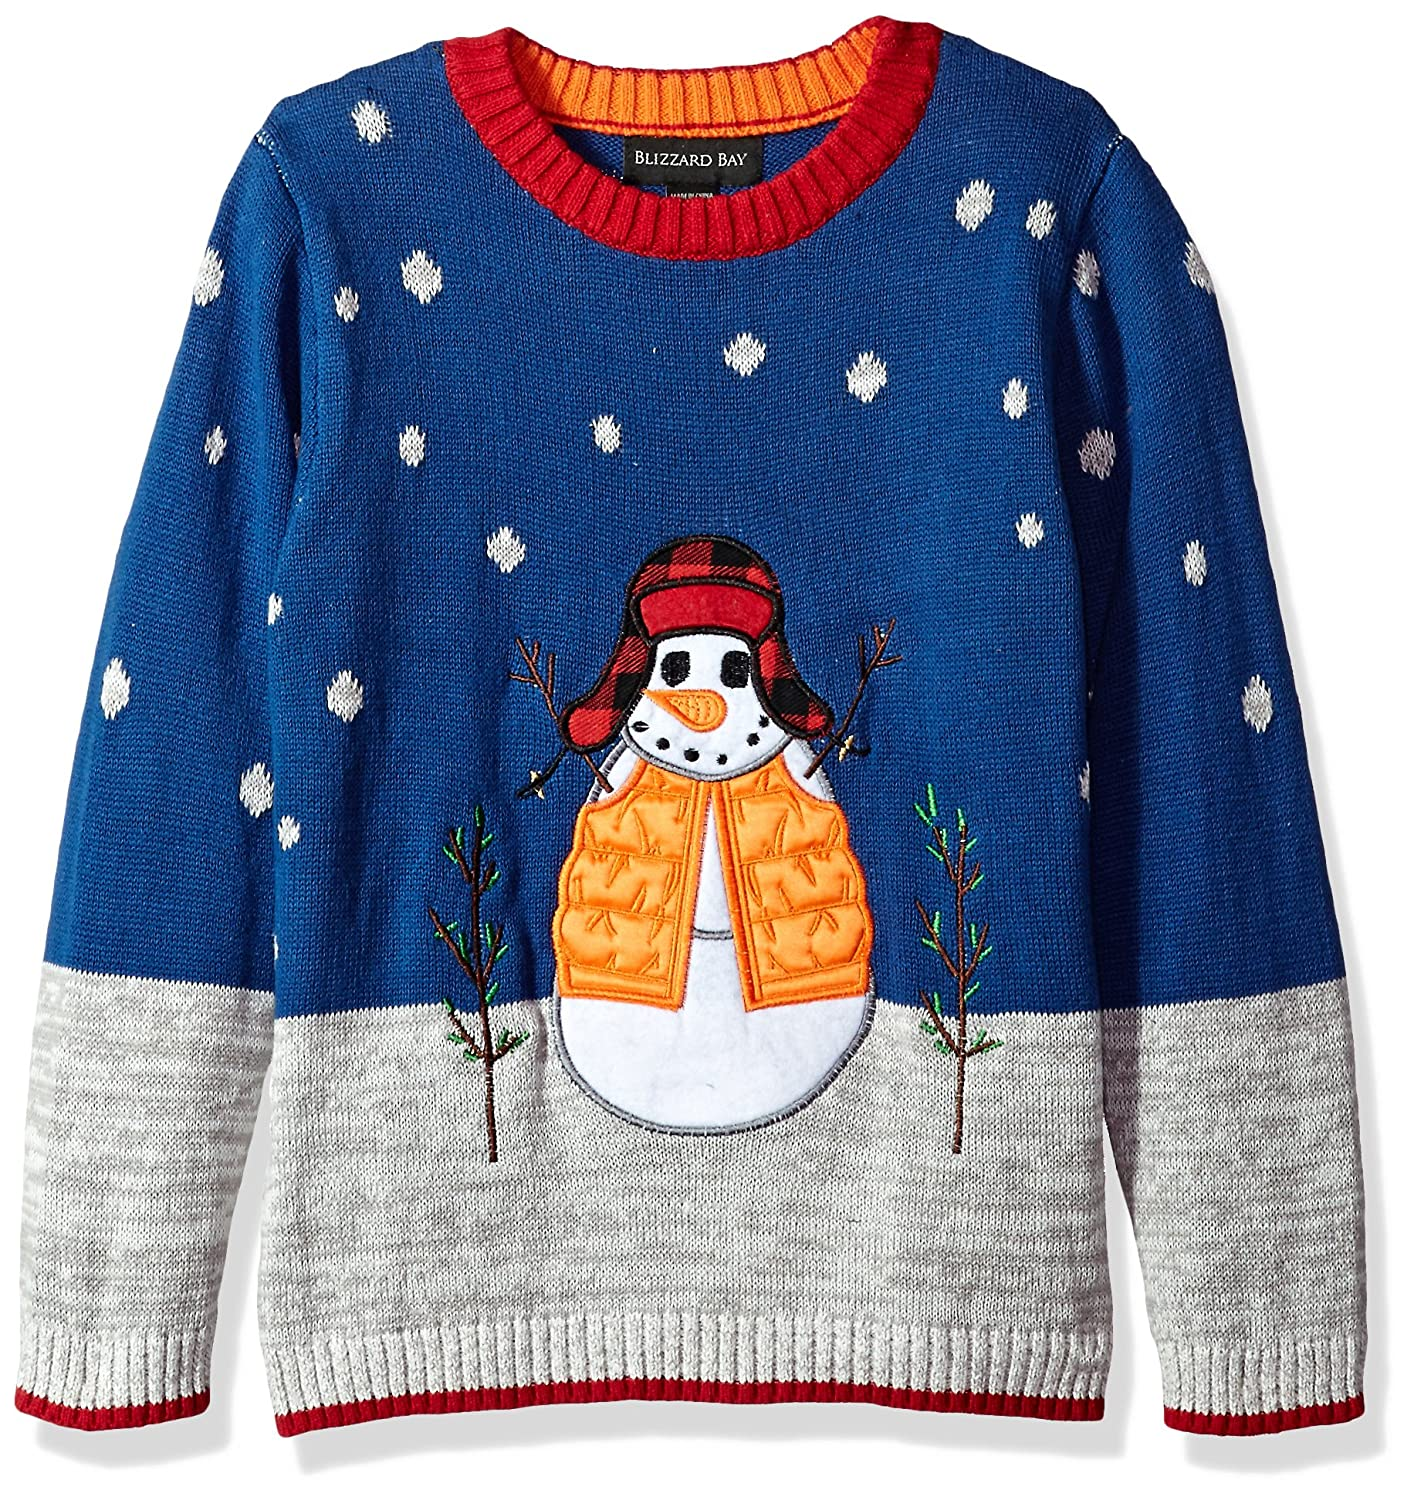 Blizzard Bay Big Boys' Snowman with Hat Xmas Sweater Blizzard Bay Boys 8-20 B65062